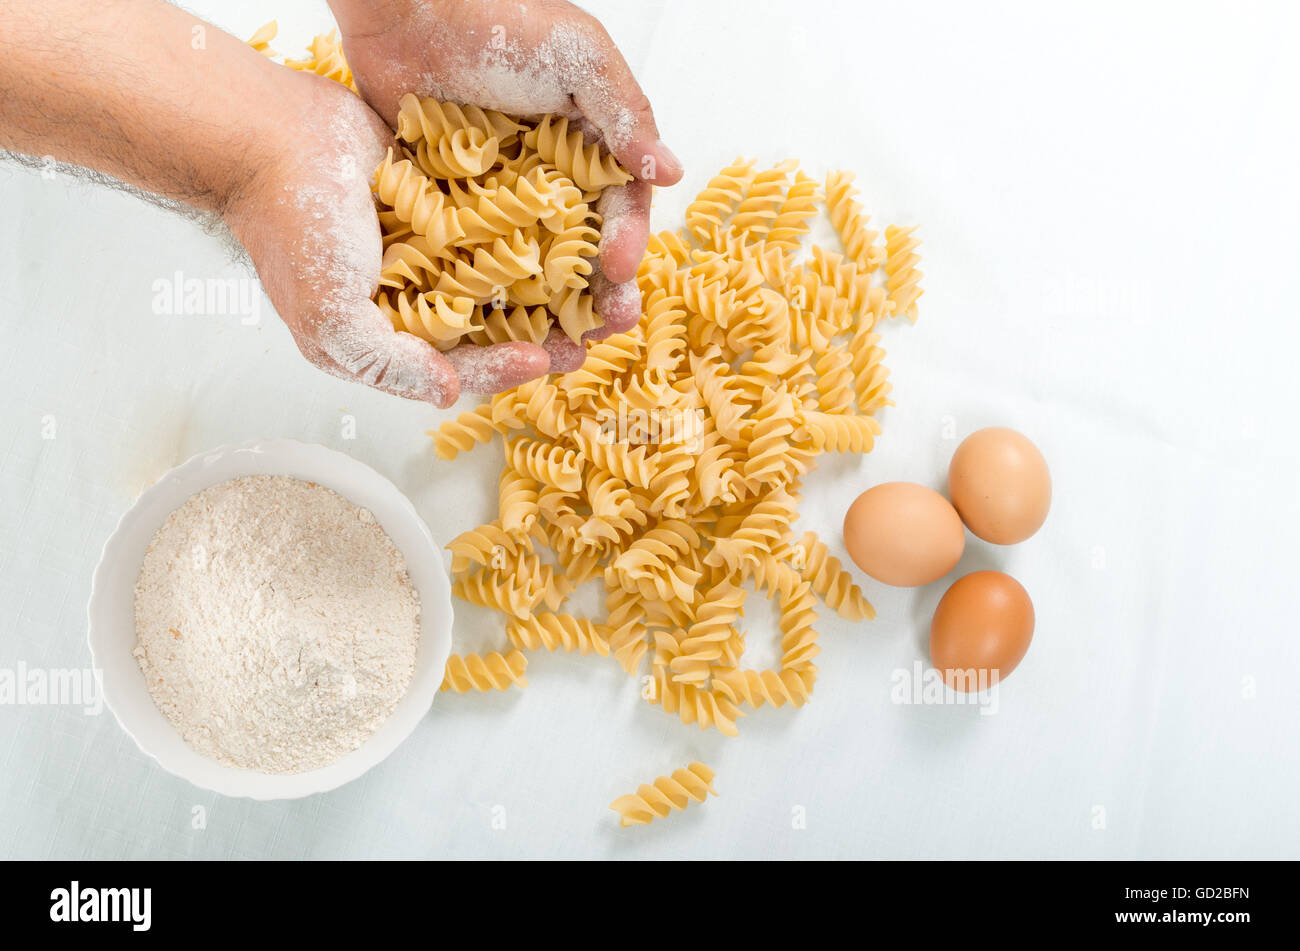 Male hands holding handmade rustic pasta - Stock Image